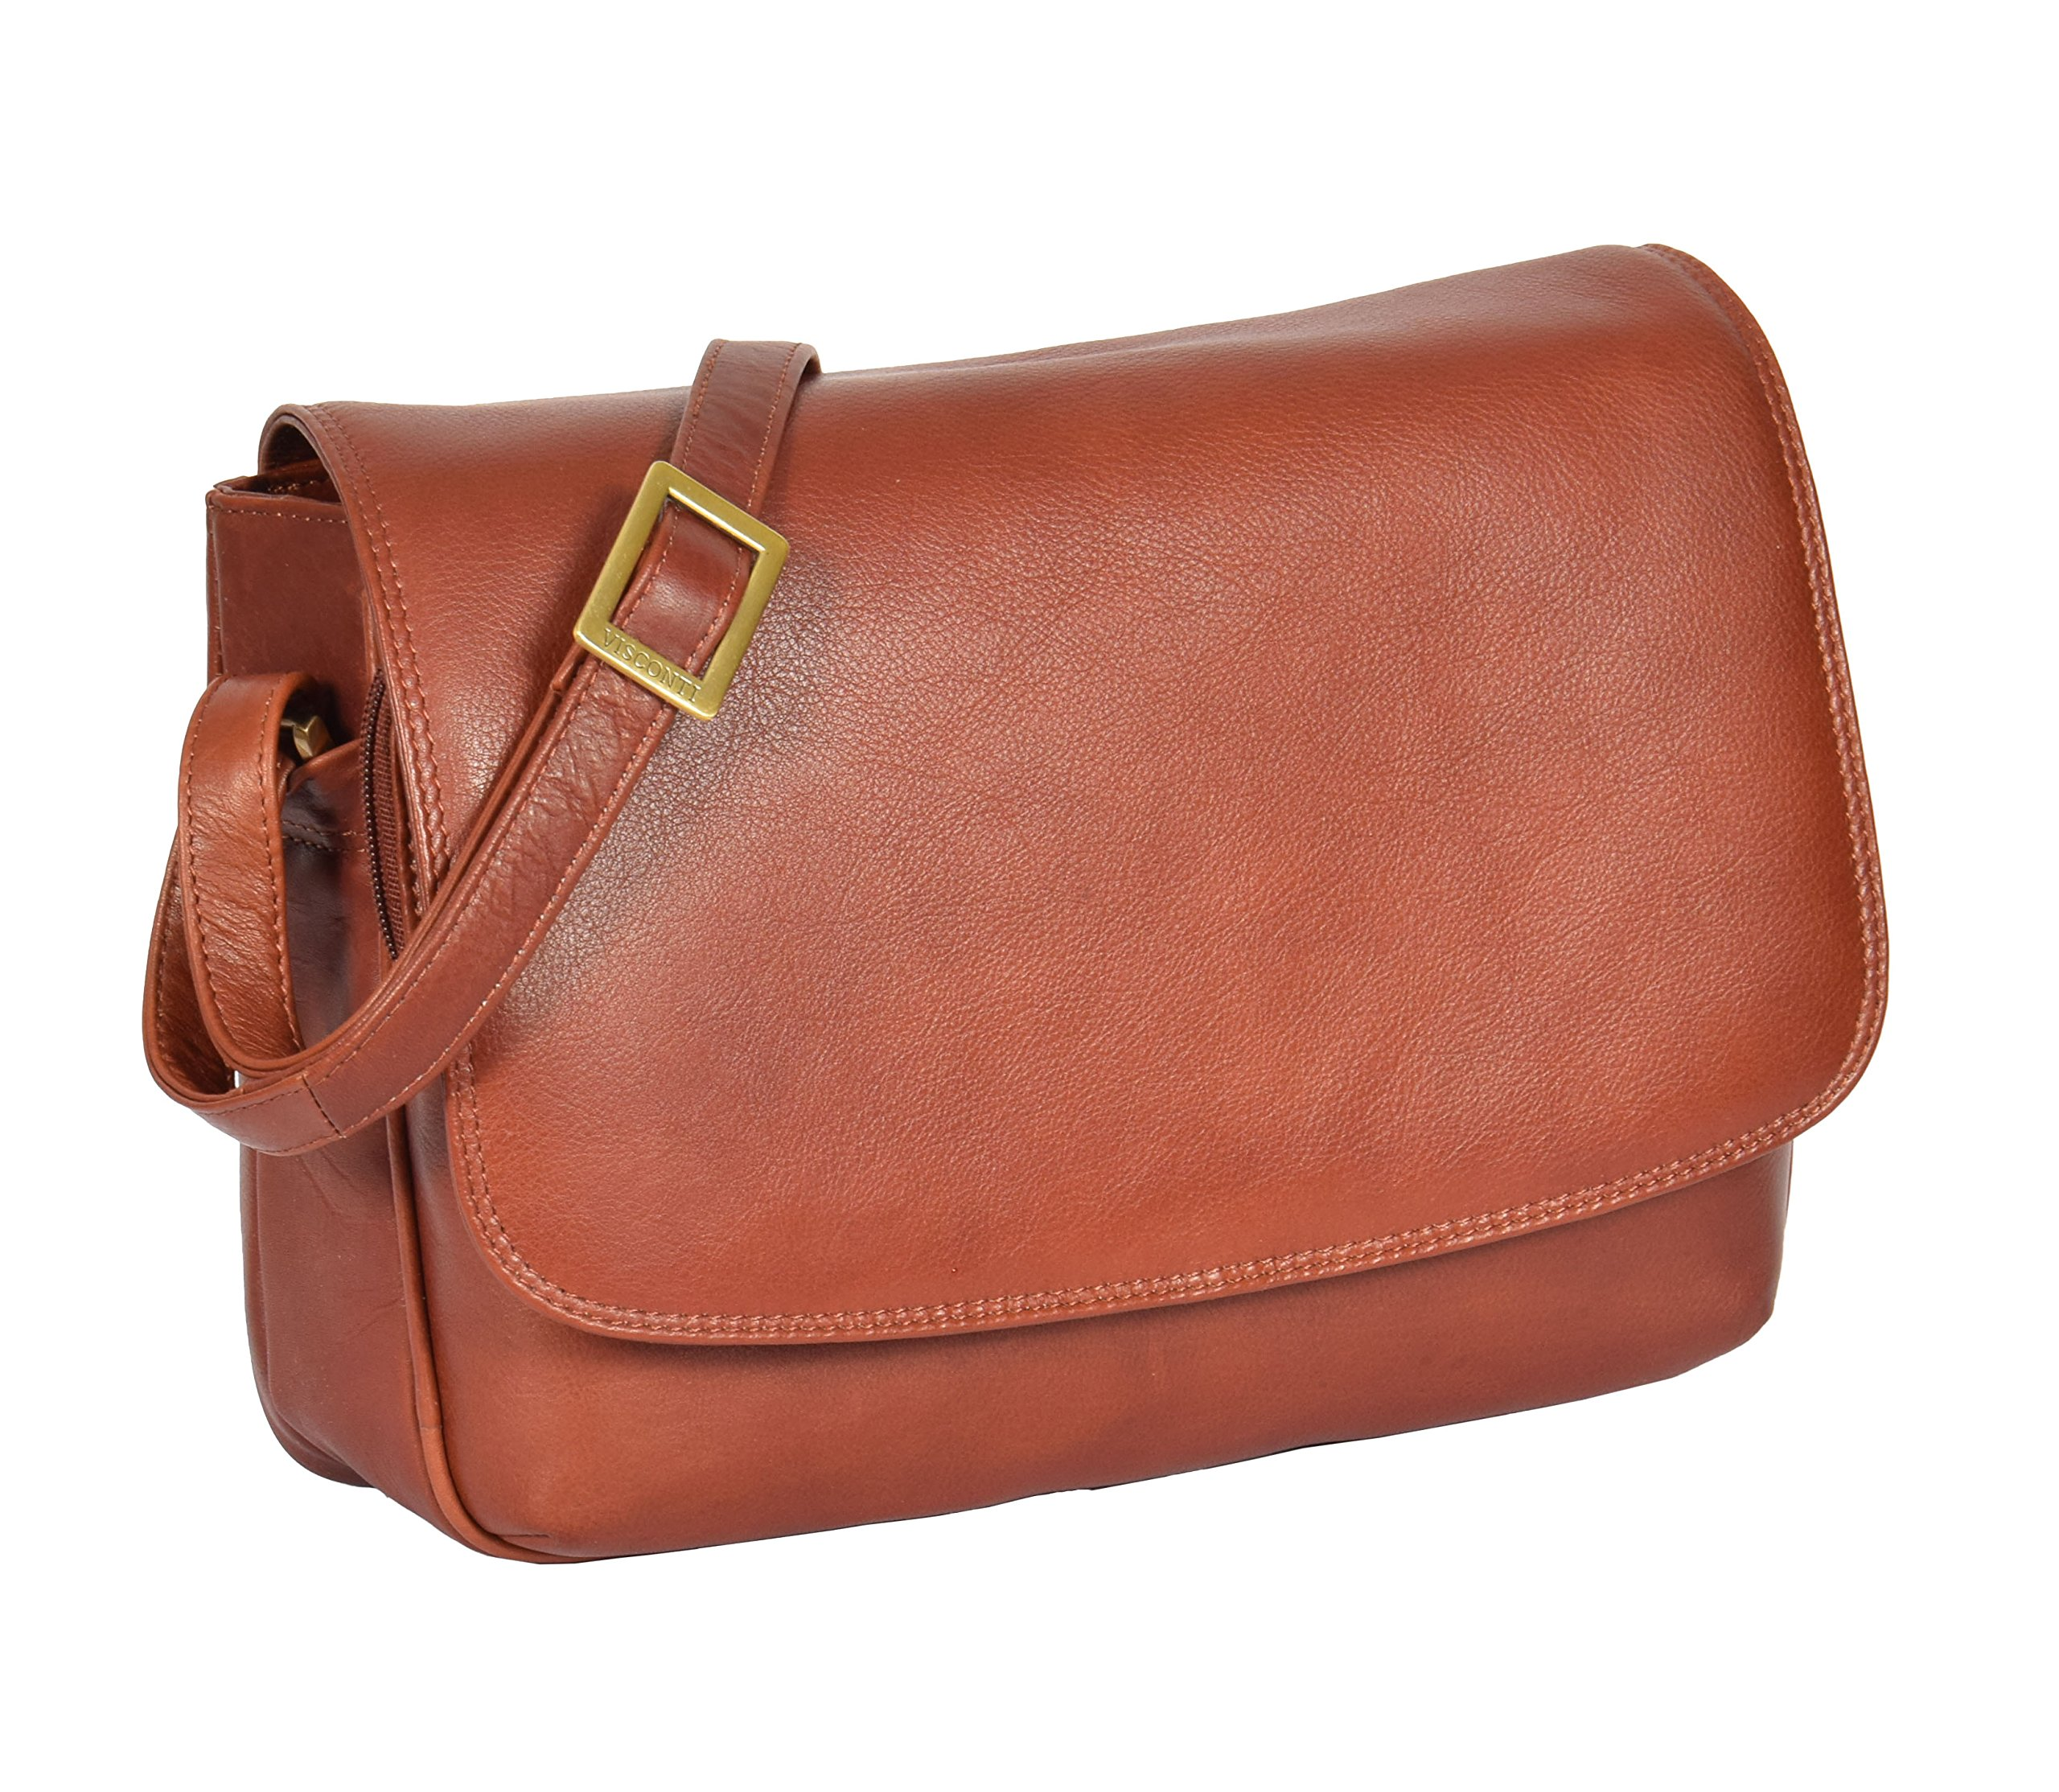 Womens Brown Shoulder Leather Organiser Cross Body Work Messenger Bag A190 by A1 FASHION GOODS (Image #1)